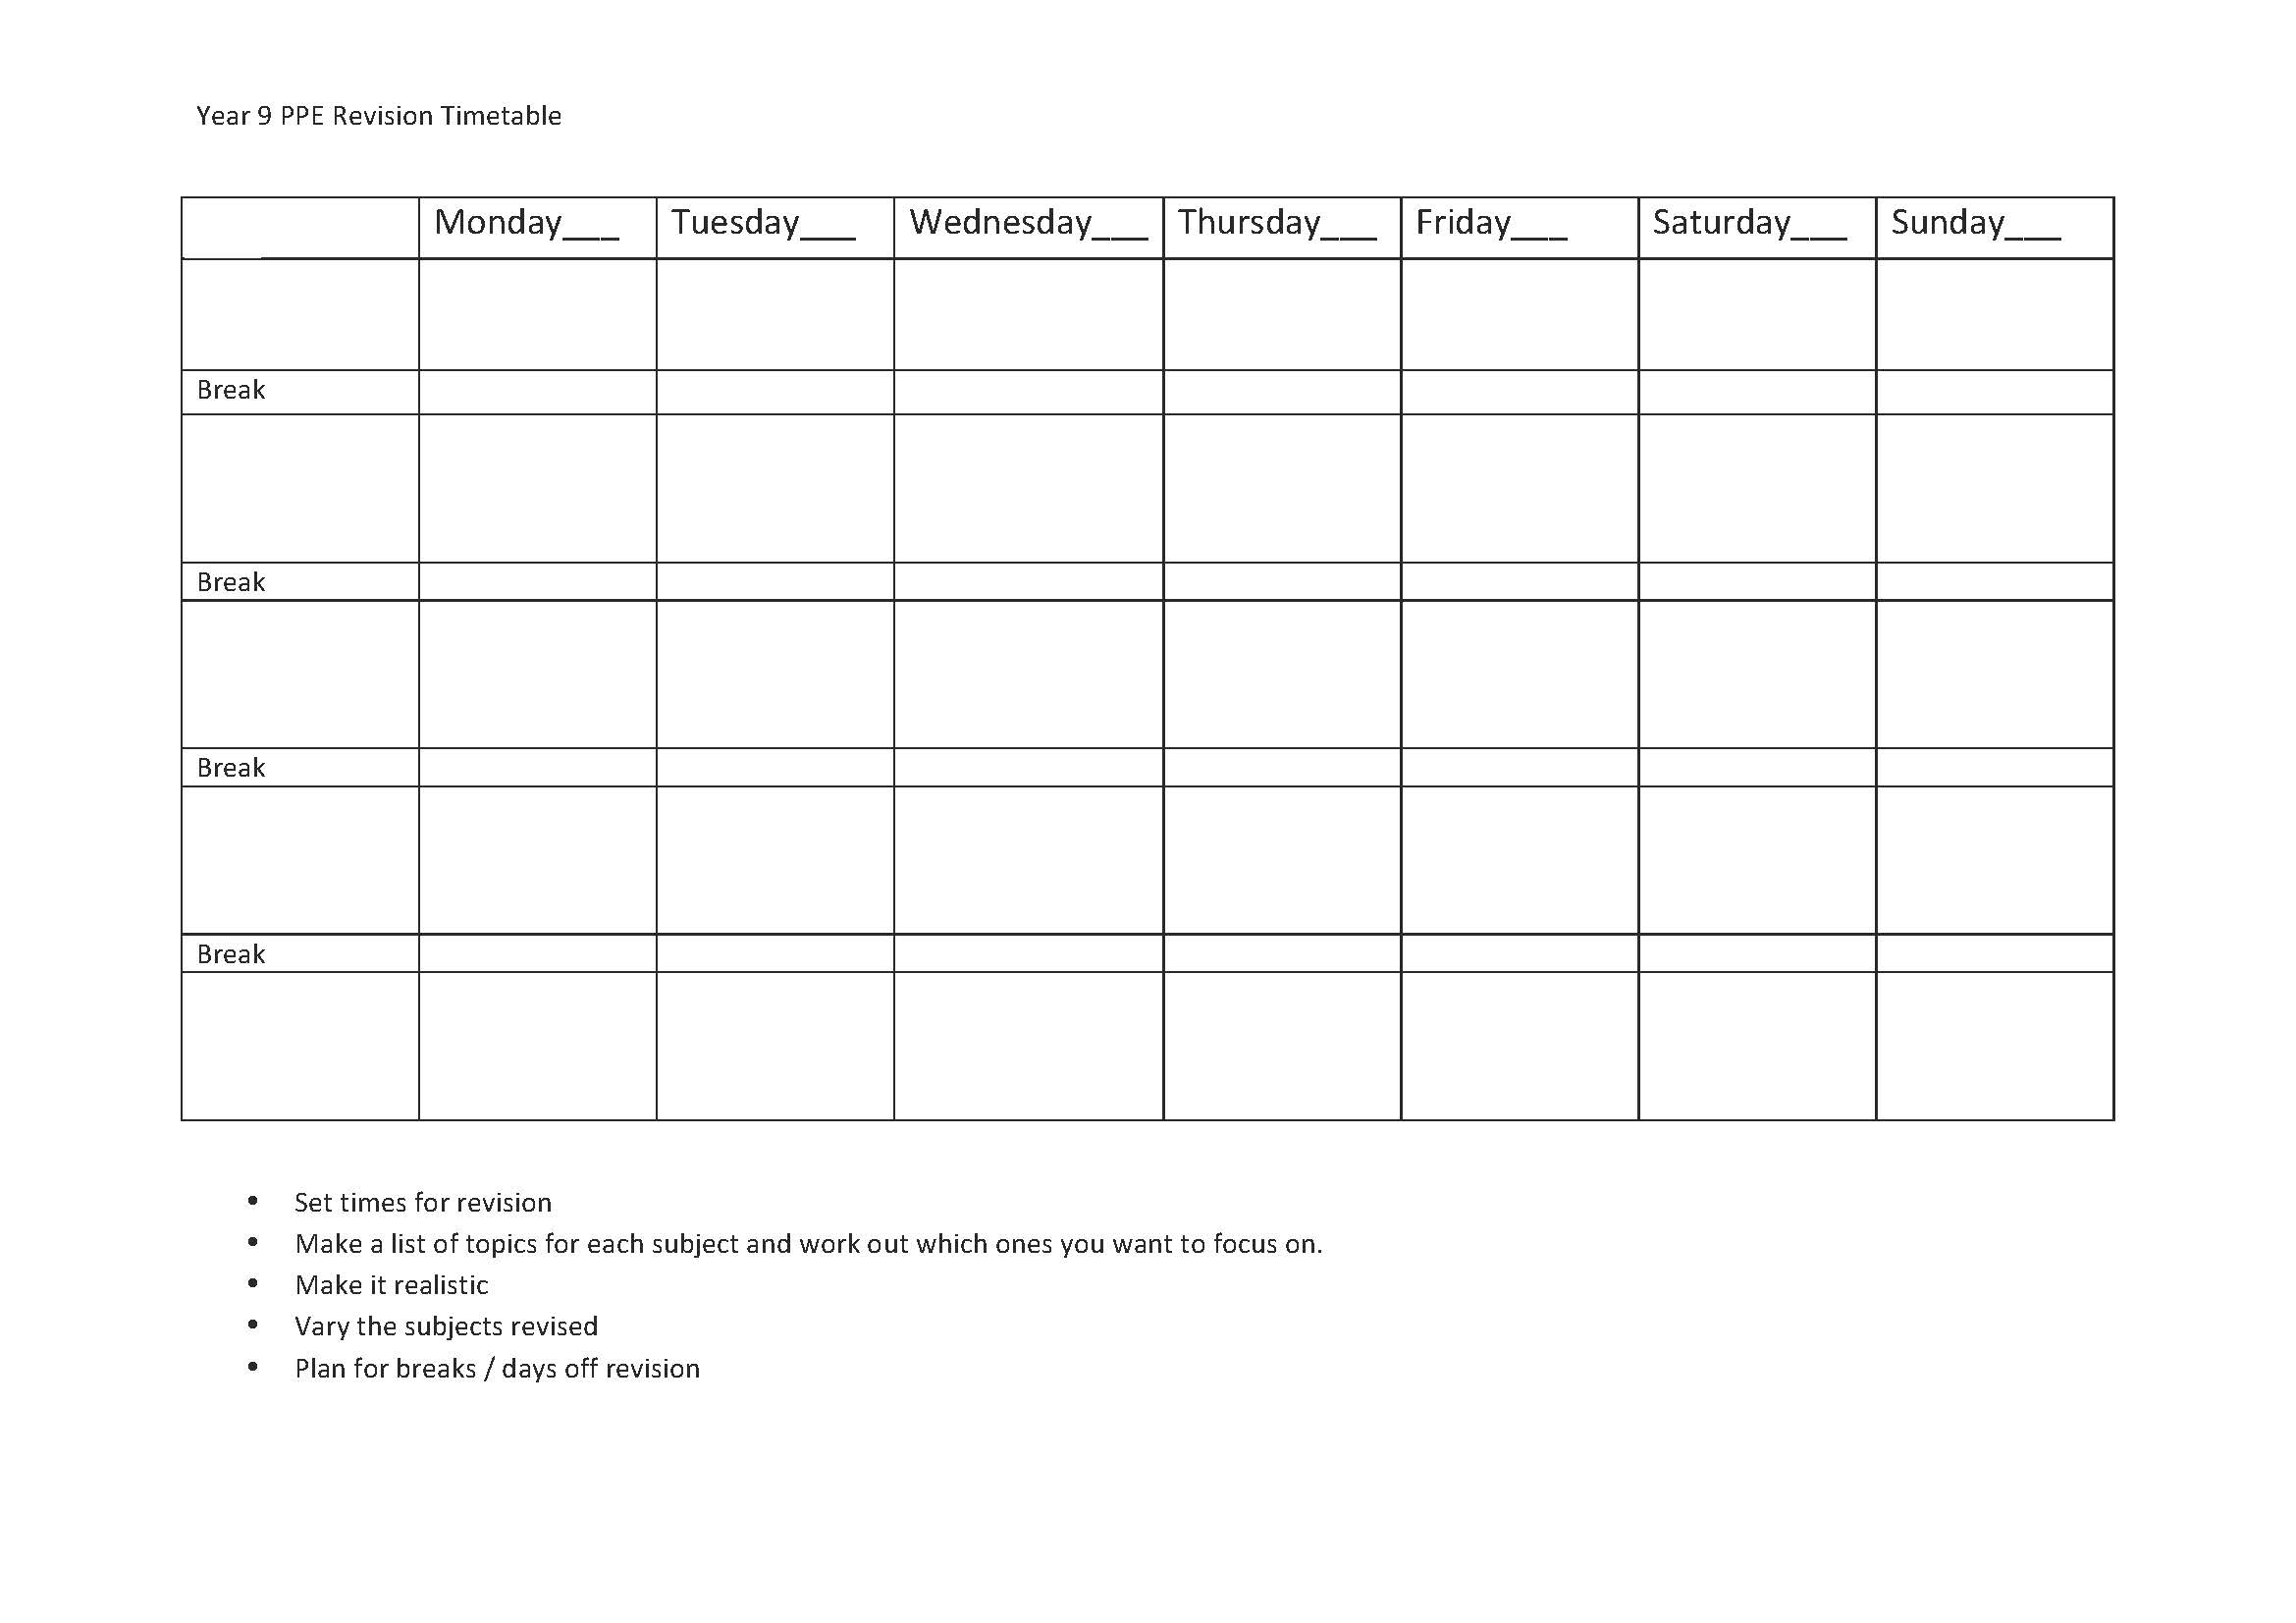 Year-9-PPE-Revision-Timetable (1)